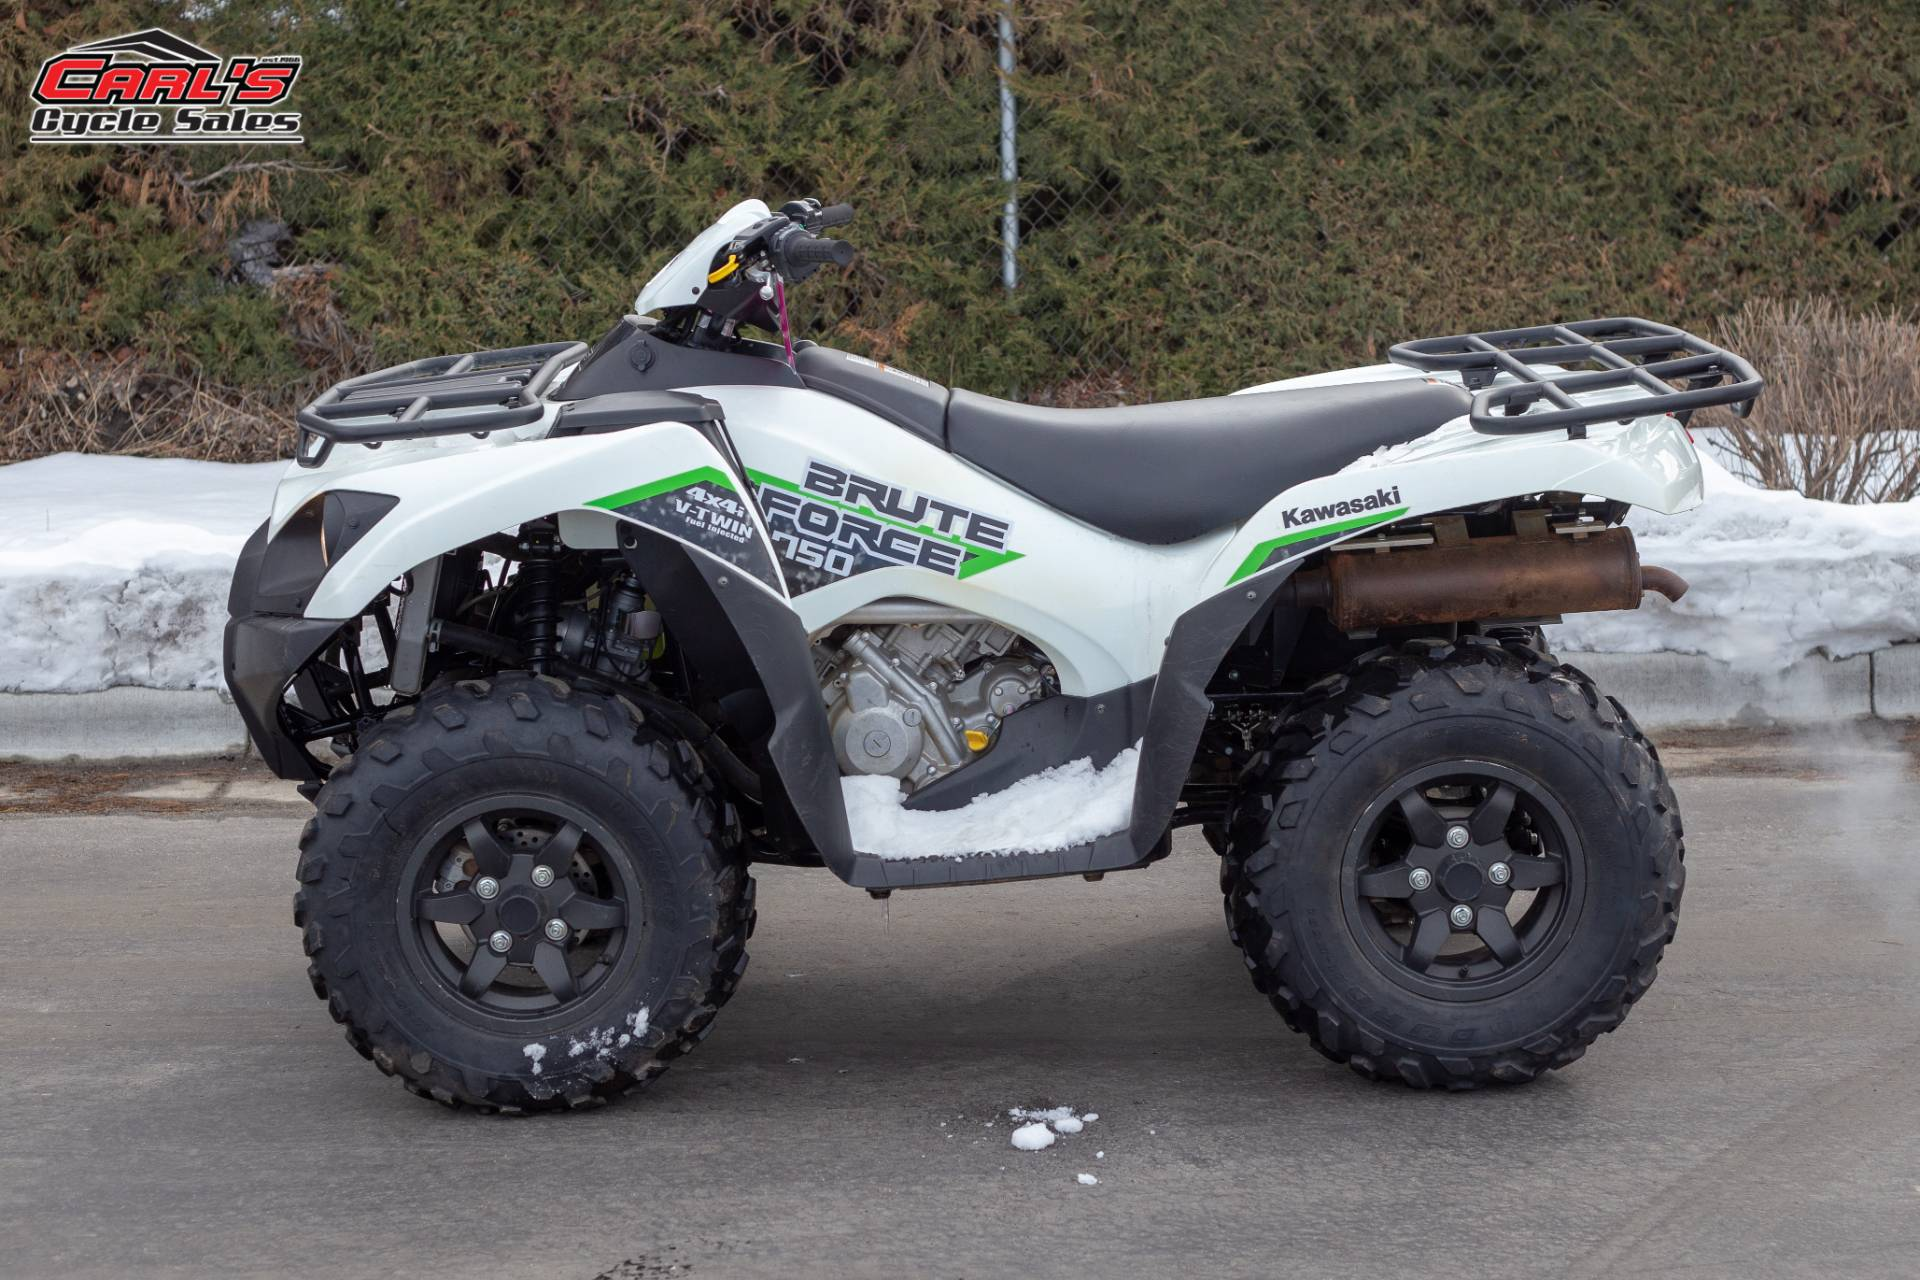 2019 Kawasaki Brute Force 750 4x4i EPS for sale 6837